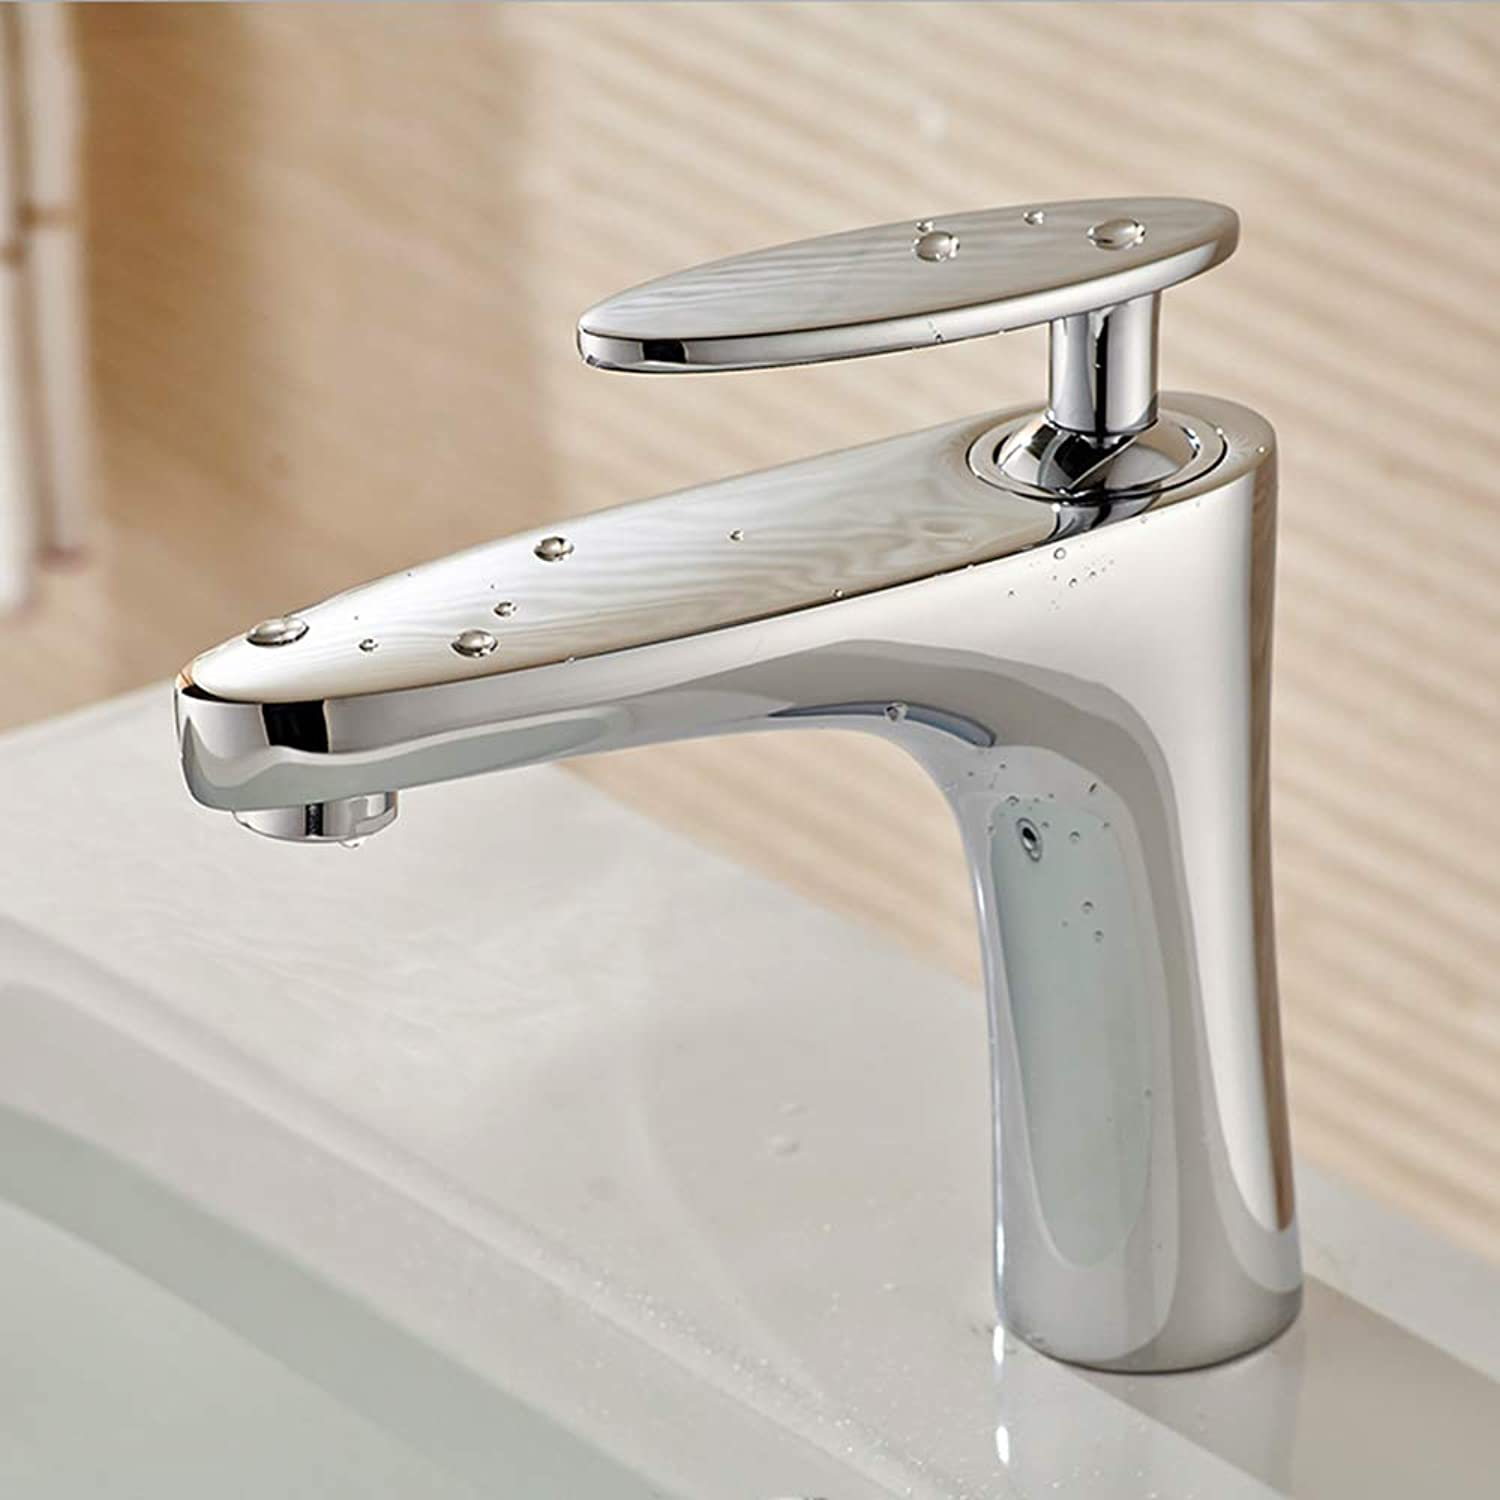 IFELGUD new White Painting Short New Brand Bathroom Hot And Cold Mixer Tap Solid Single Hand Brass Basin Faucet Chrome Faucet